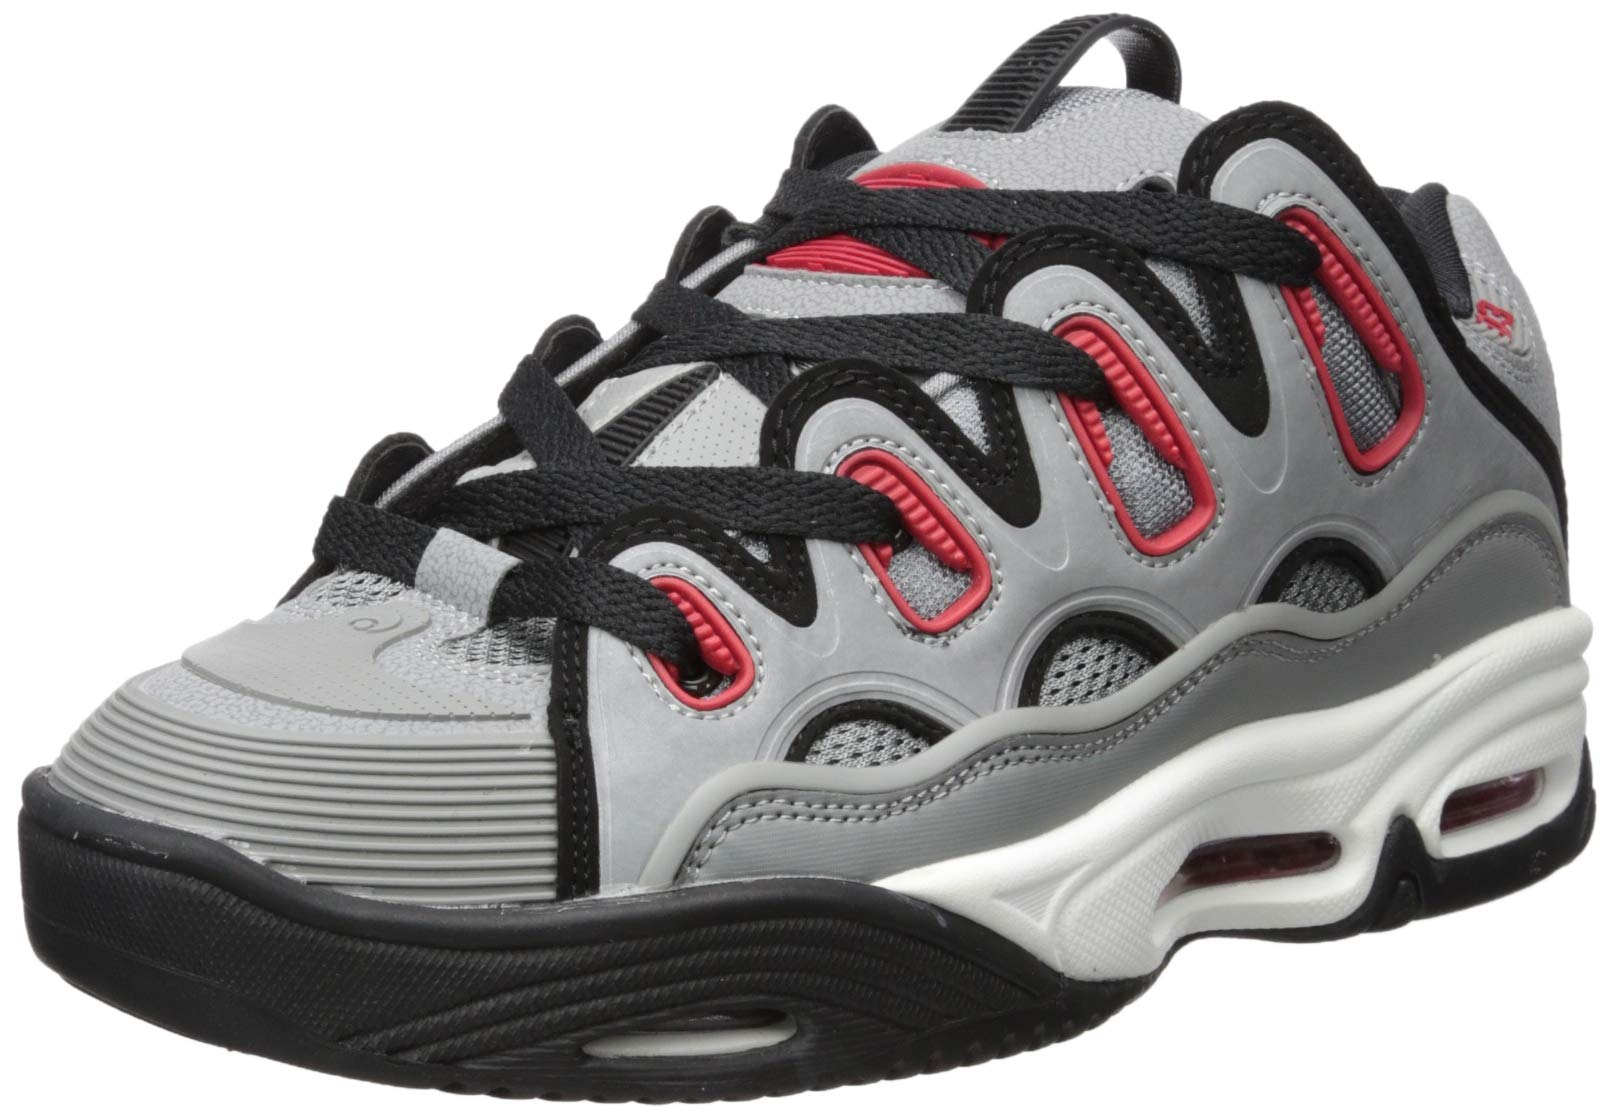 c651b491474479 Galleon - Osiris Men's D3 2001 Skate Shoe, Grey/red/Black, 10.5 M US